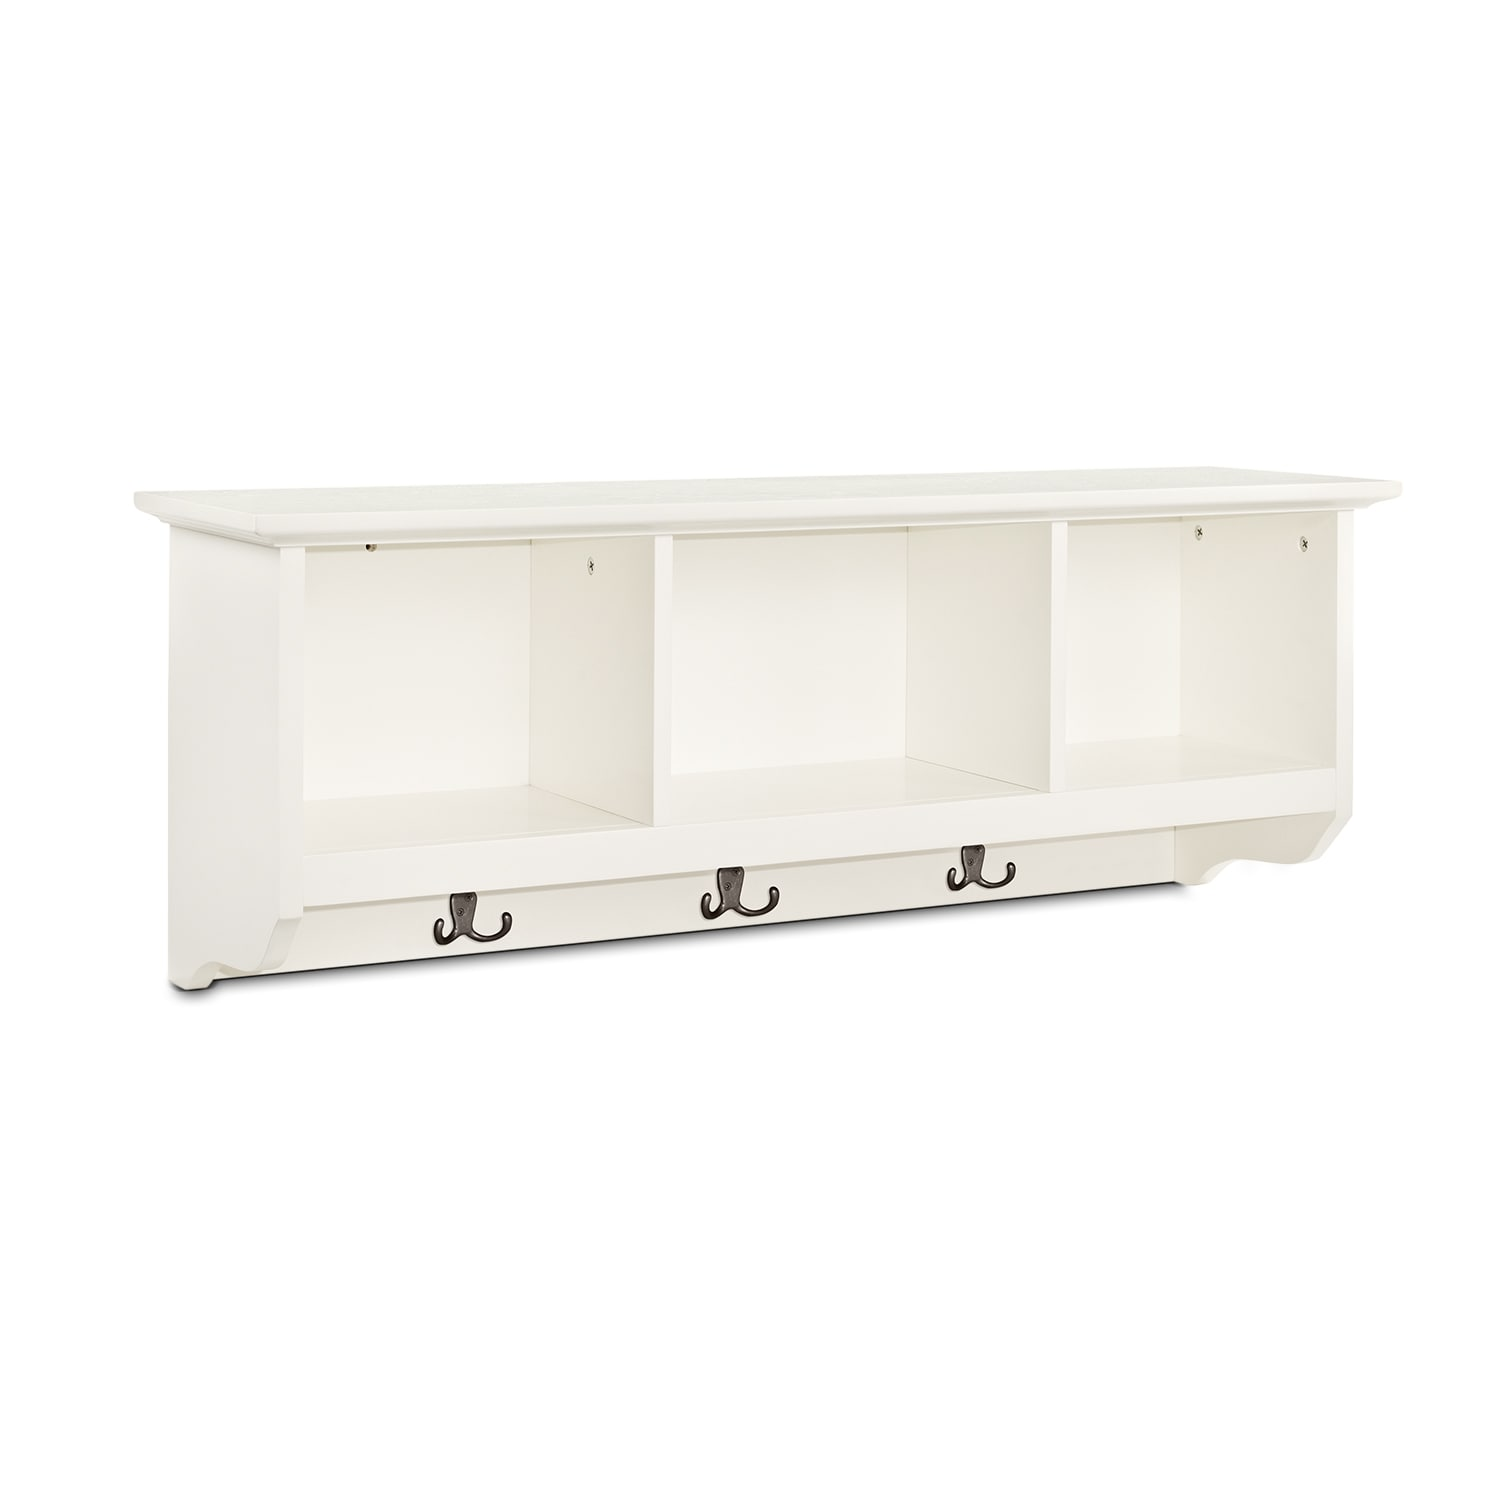 Accent and Occasional Furniture - Levi White Entryway Storage Shelf